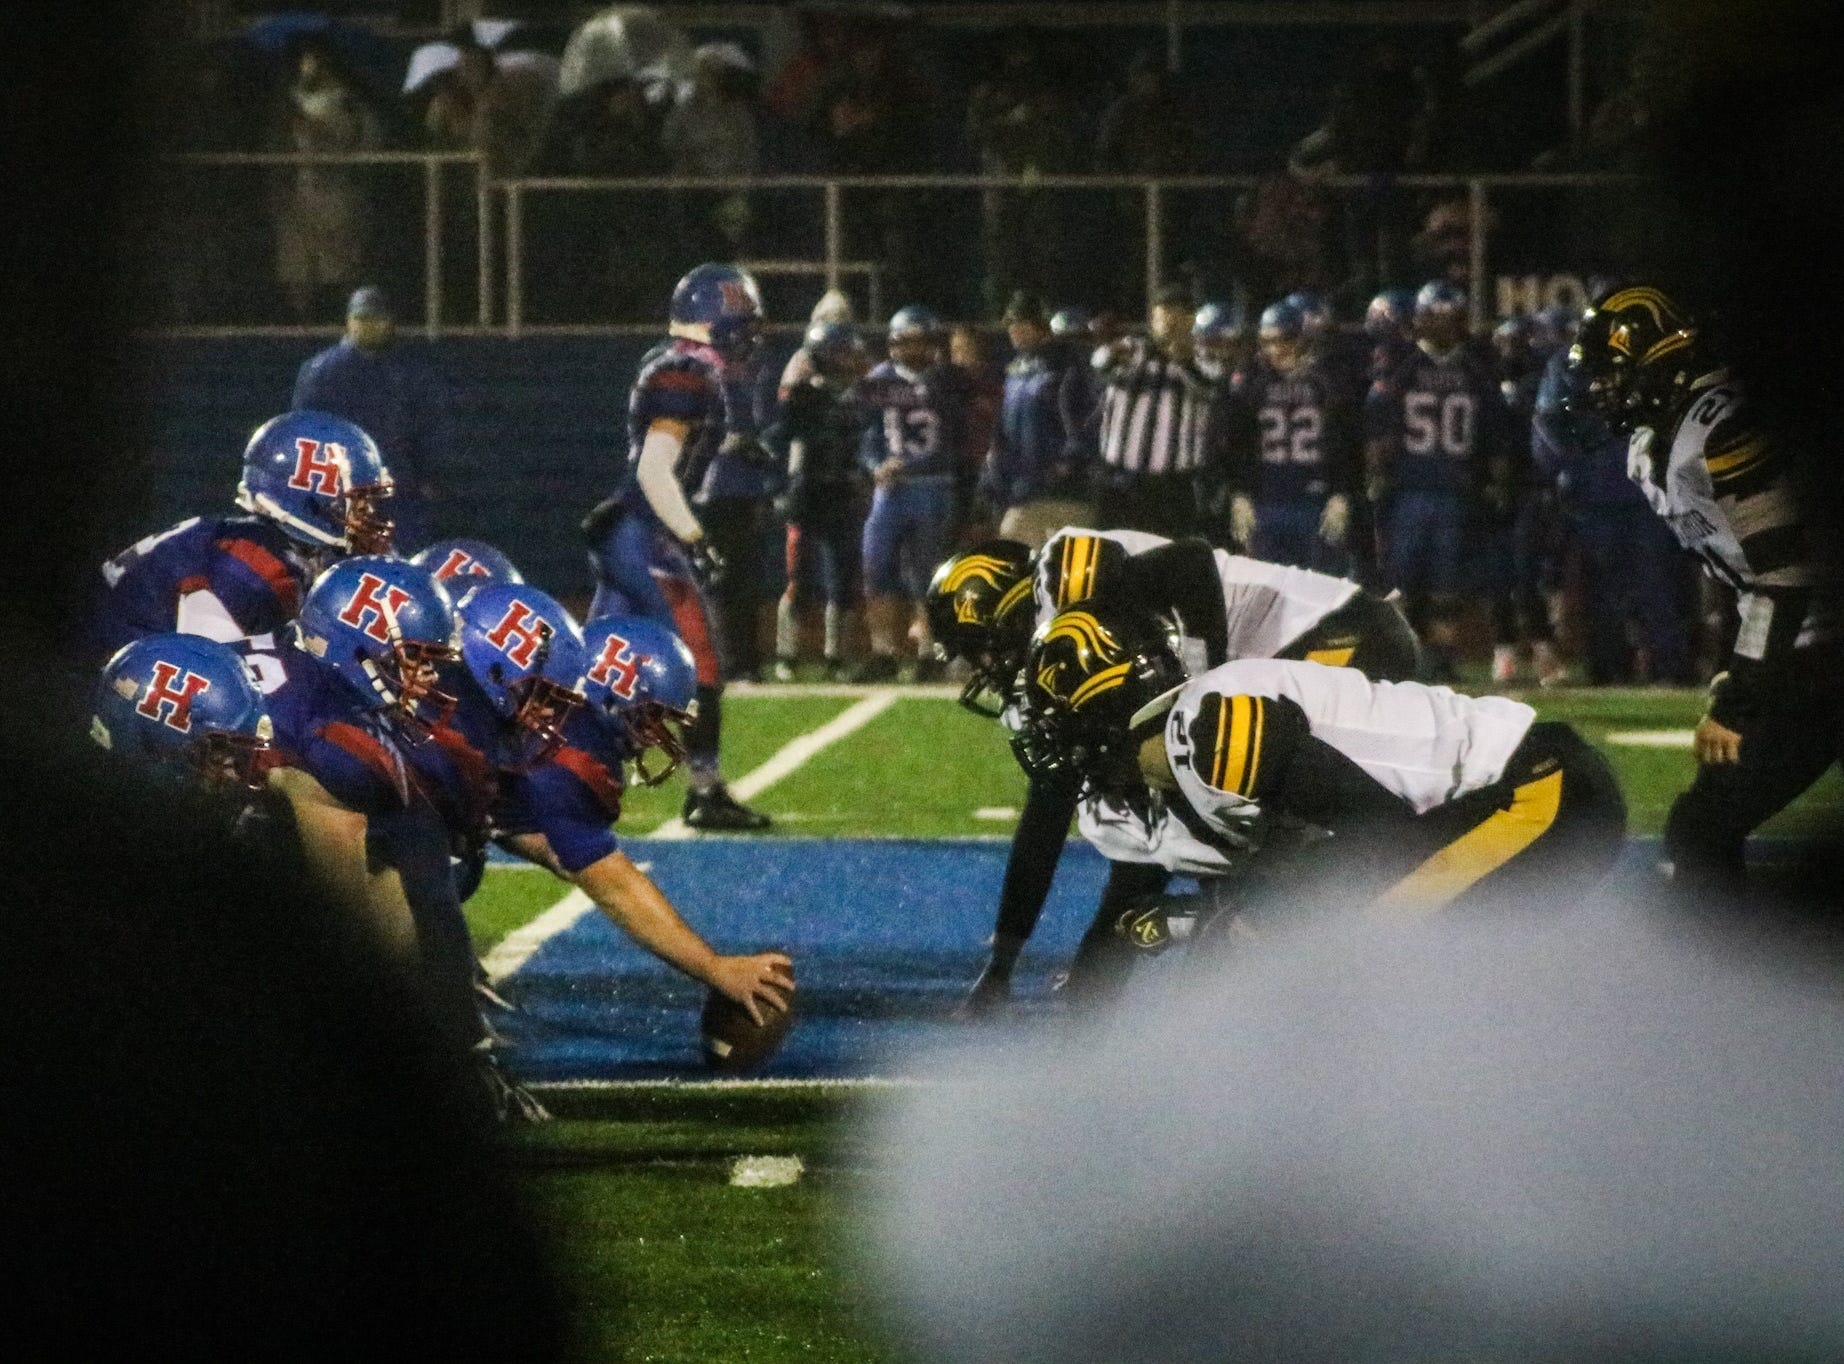 Highland earned an outright KMAC football championship after its winner-take-all matchup with Northmor at home Friday night.